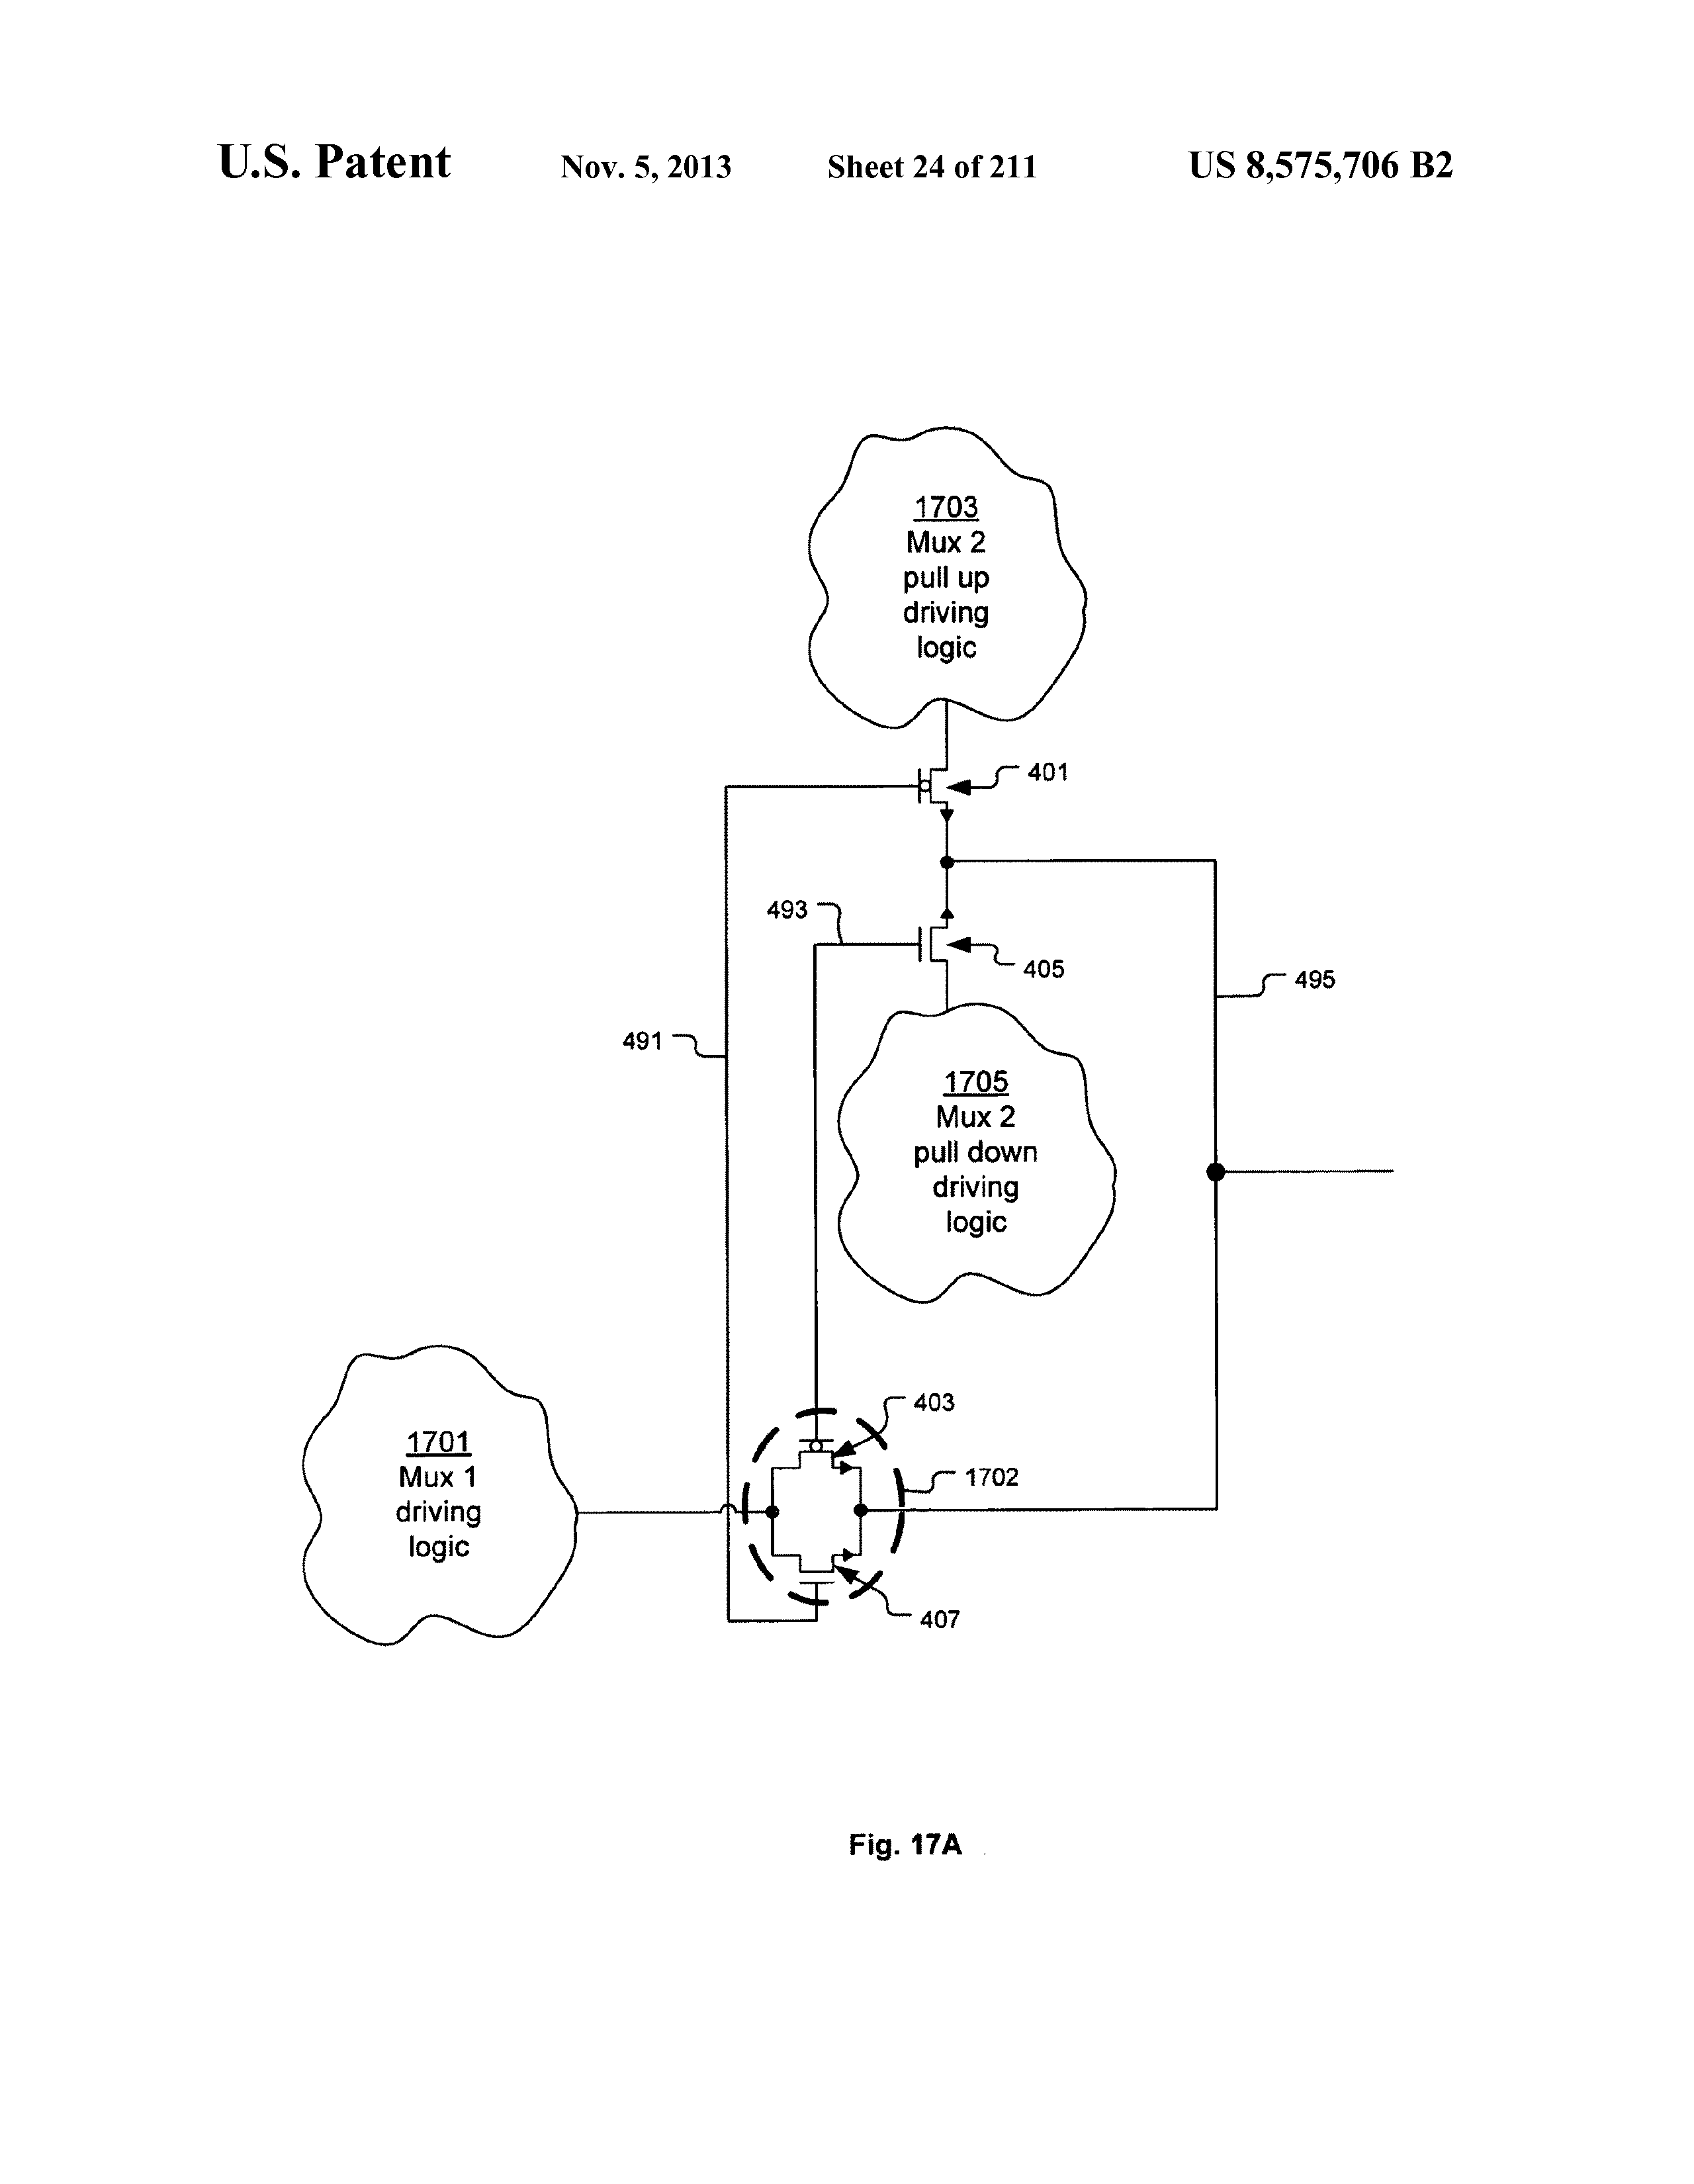 Us 8575706 B2 Integrated Circuit Including Cross Coupled Logic Diagram Mux Page 34 250